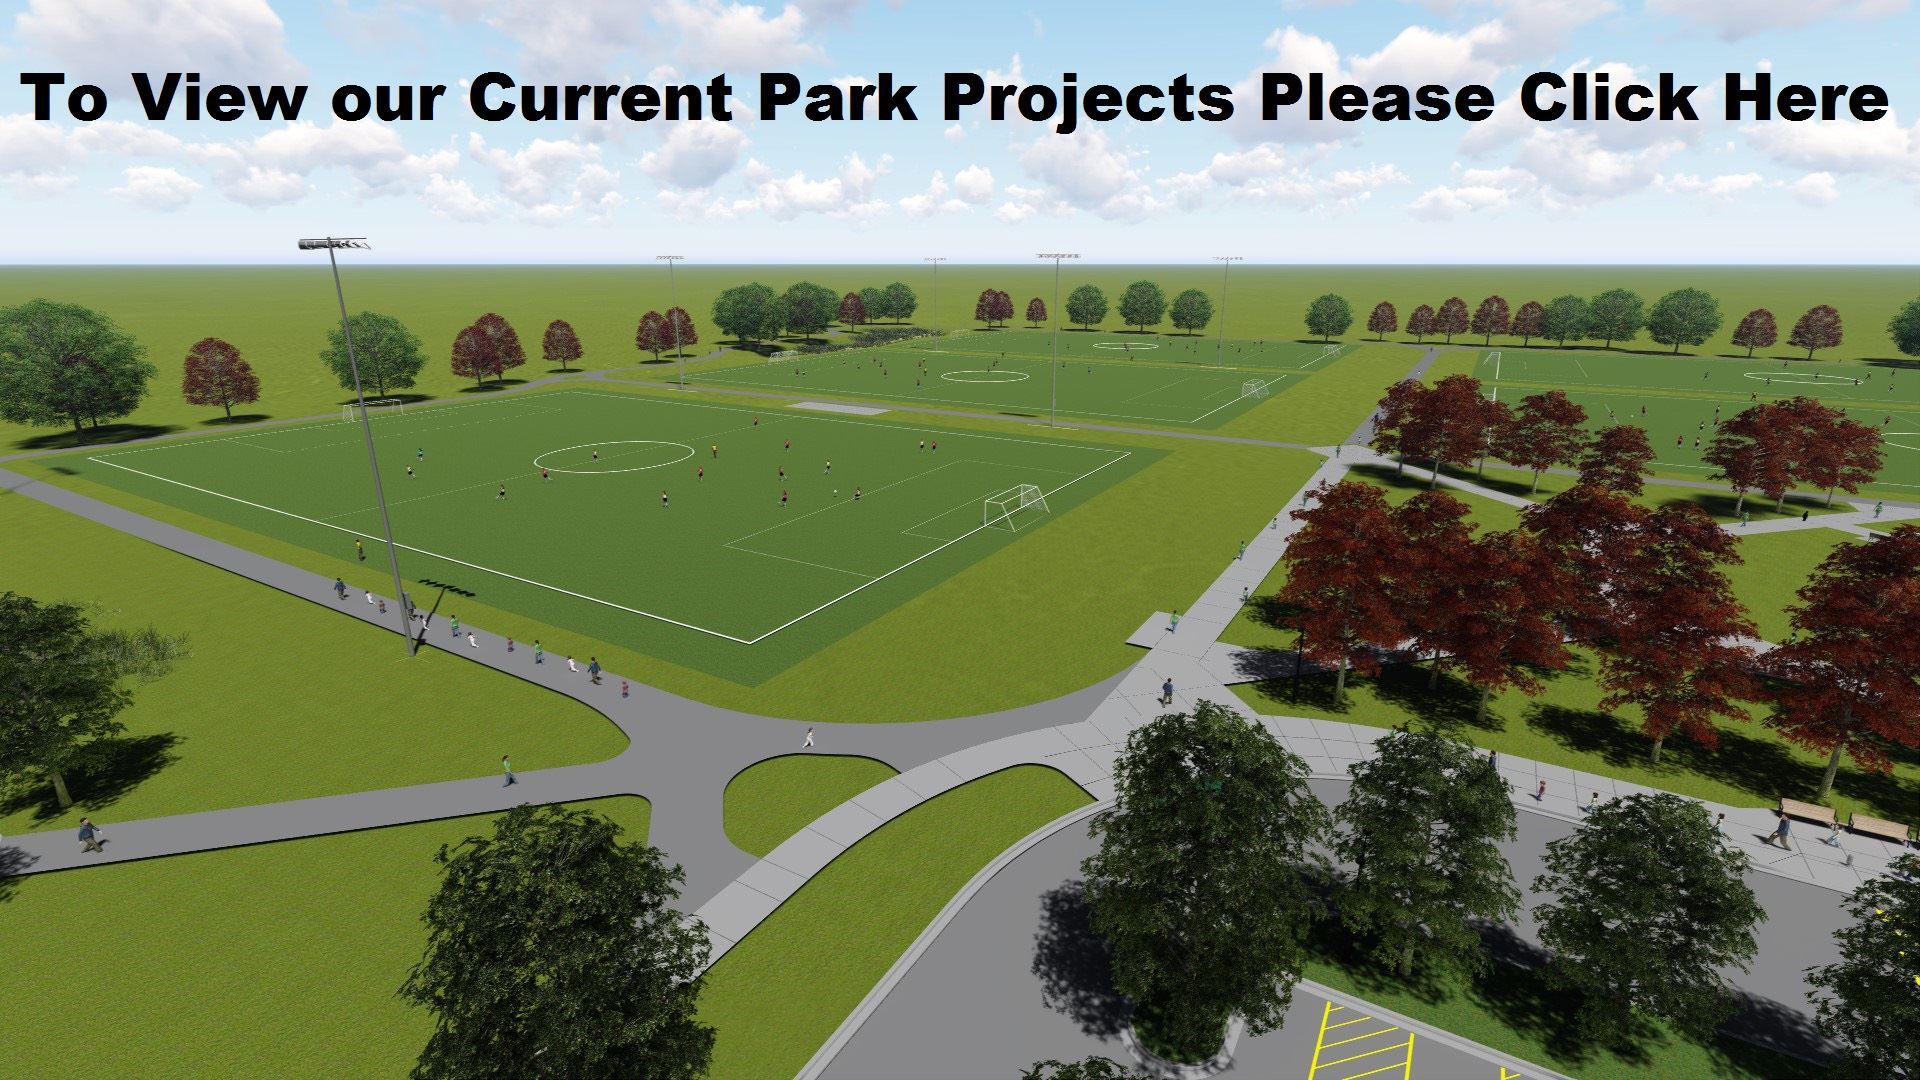 For Current Park Projects Please Click Here